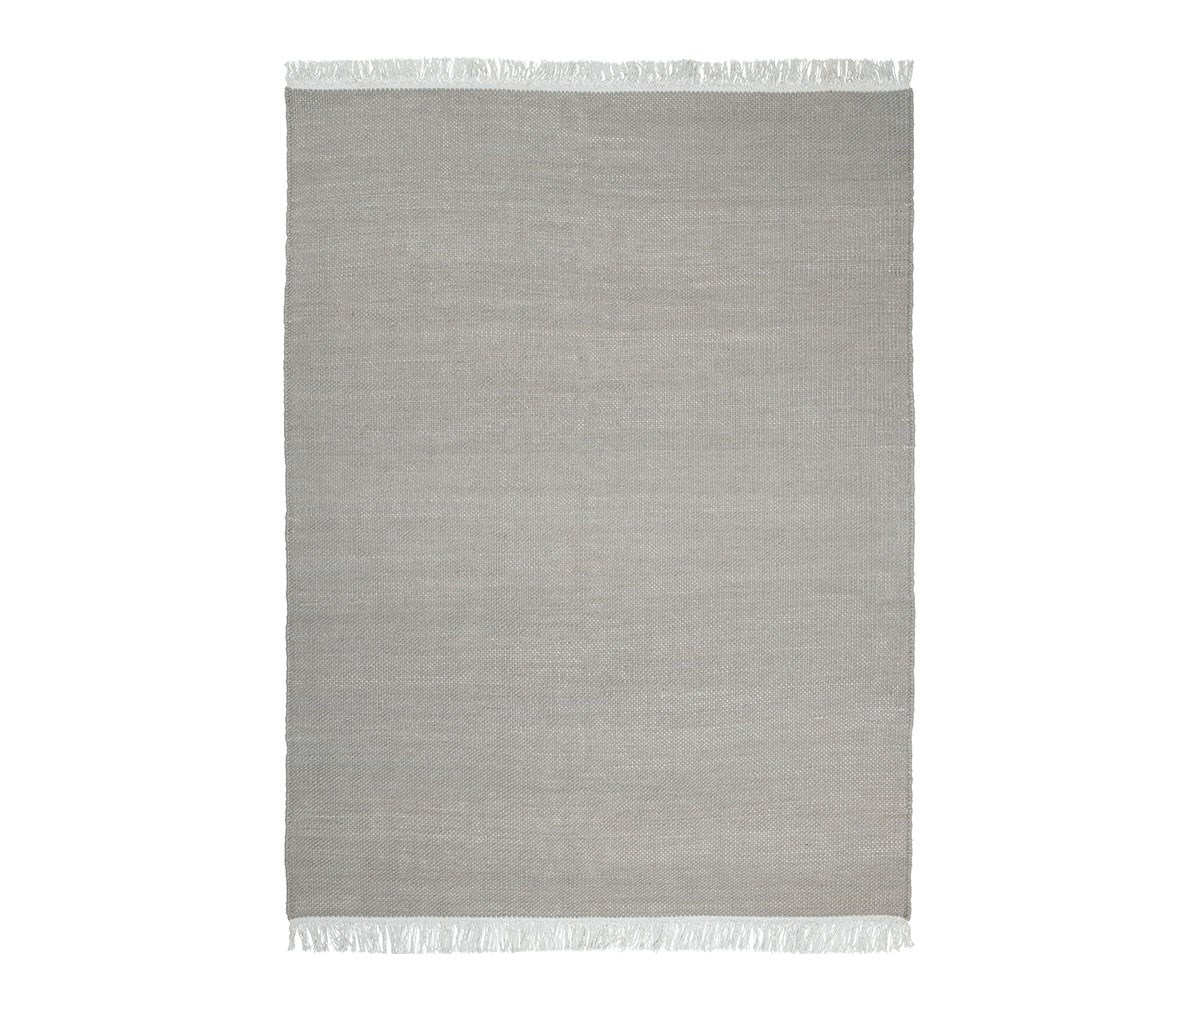 Linie Design Birla-matto grey, 200 x 300 cm